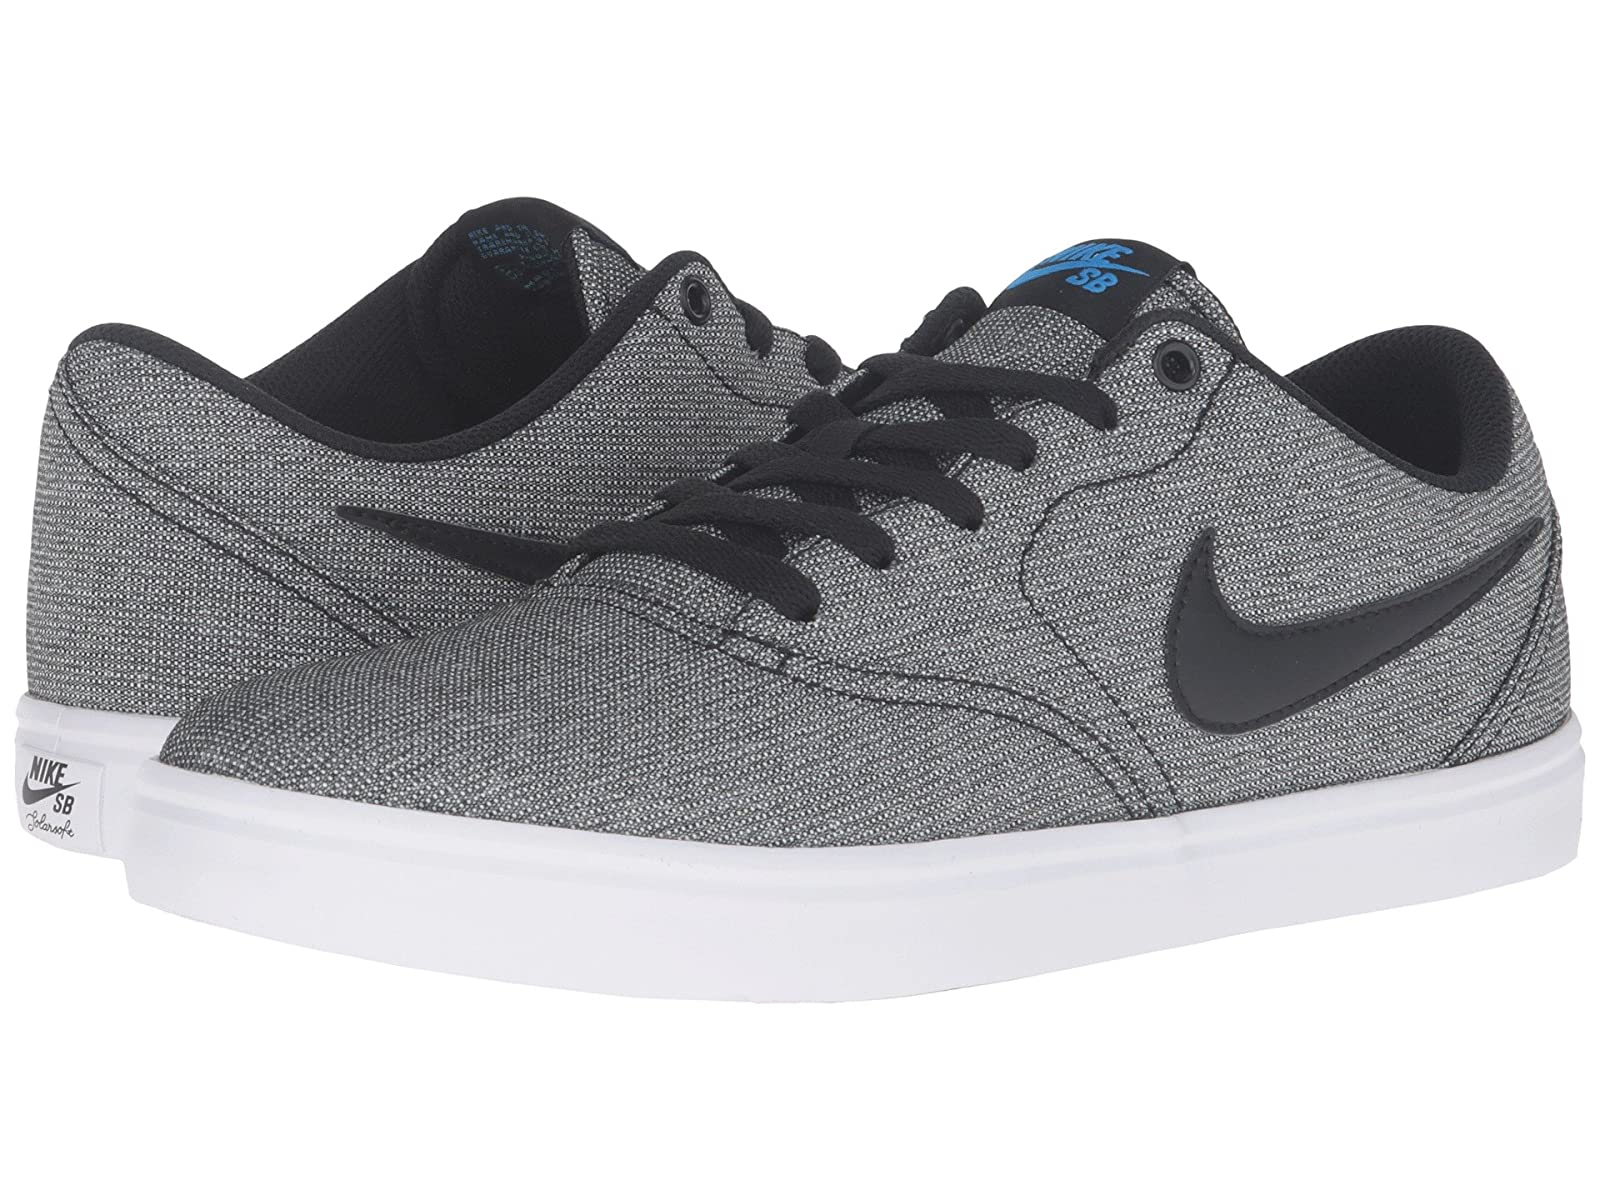 Nike SB Check Solar CanvasAtmospheric grades have affordable shoes